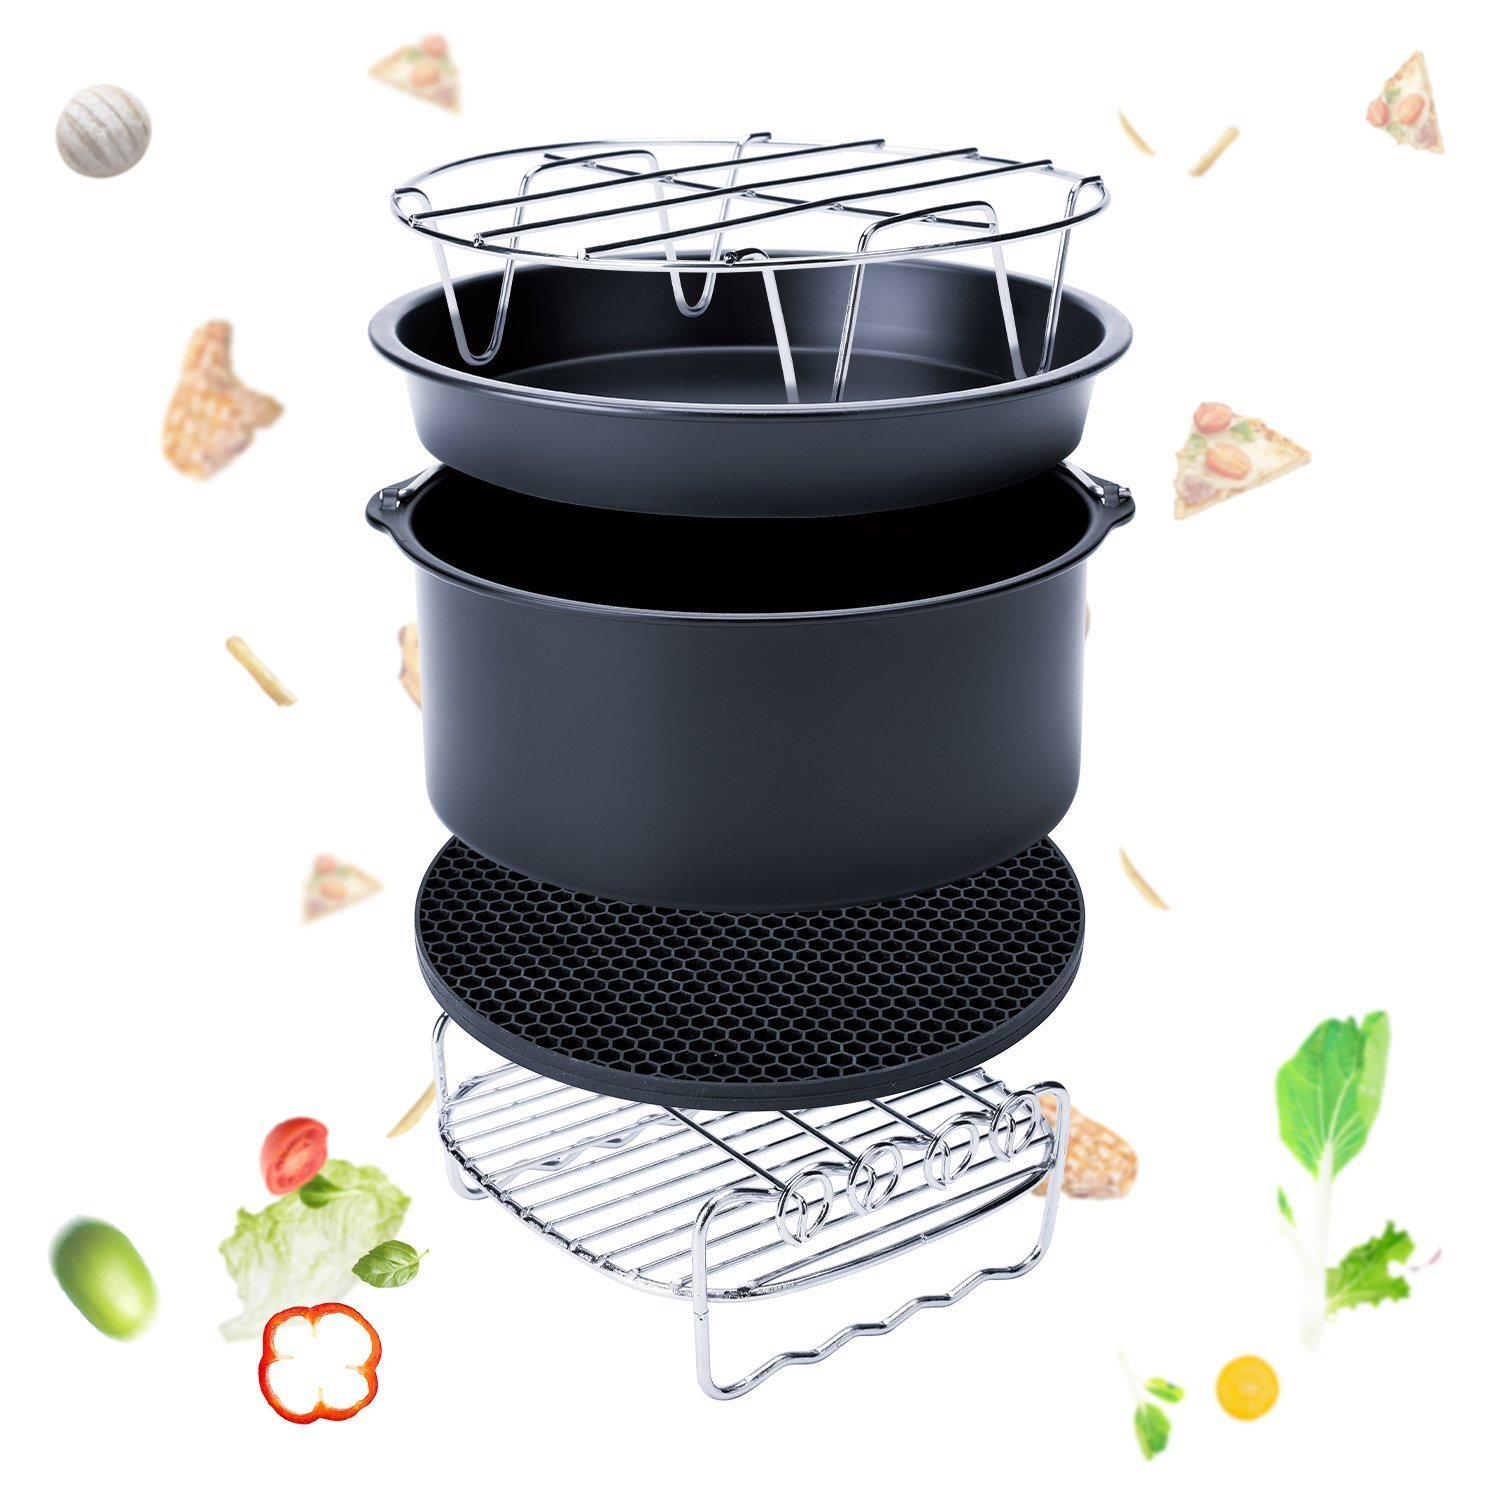 Cooking Rack Round Air Fryer Rack Stainless Steel Baking Steaming Rack W Stand Cookware Fit for Air Fryer Instant Pot Pressure Cooker Canning Set of 2 8Inch